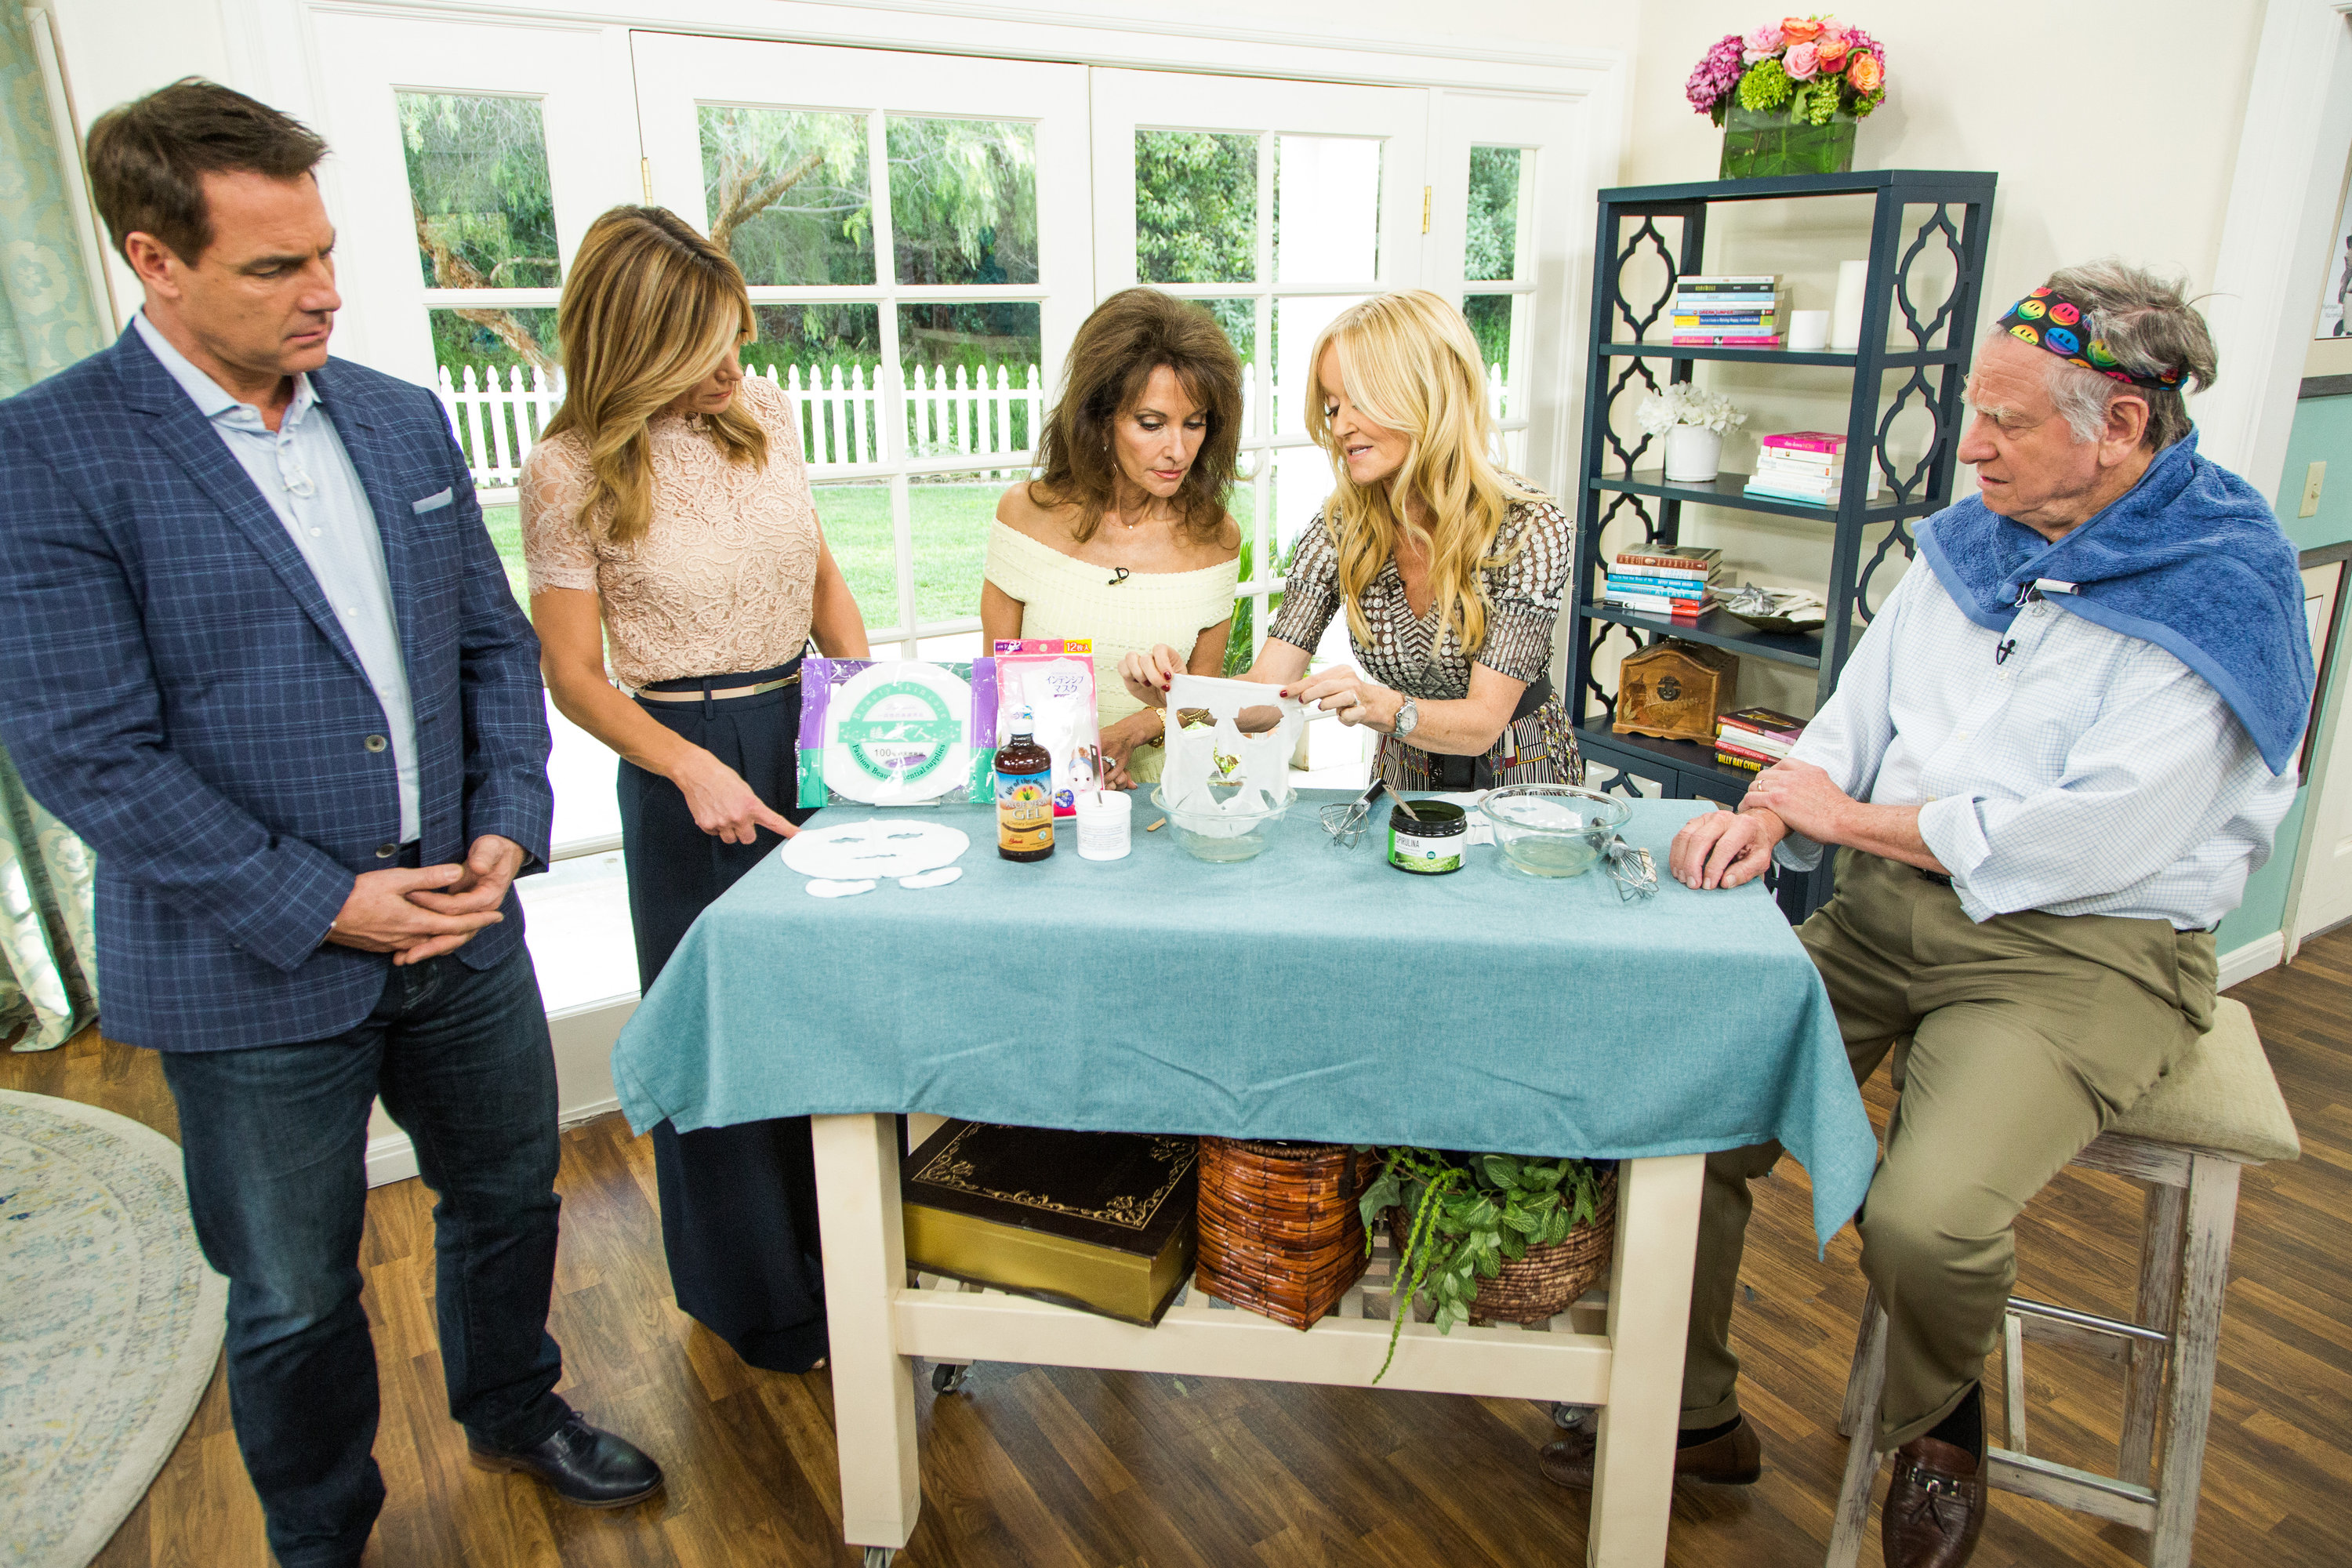 How To - Home & Family: Anti-Aging Masks | Hallmark Channel